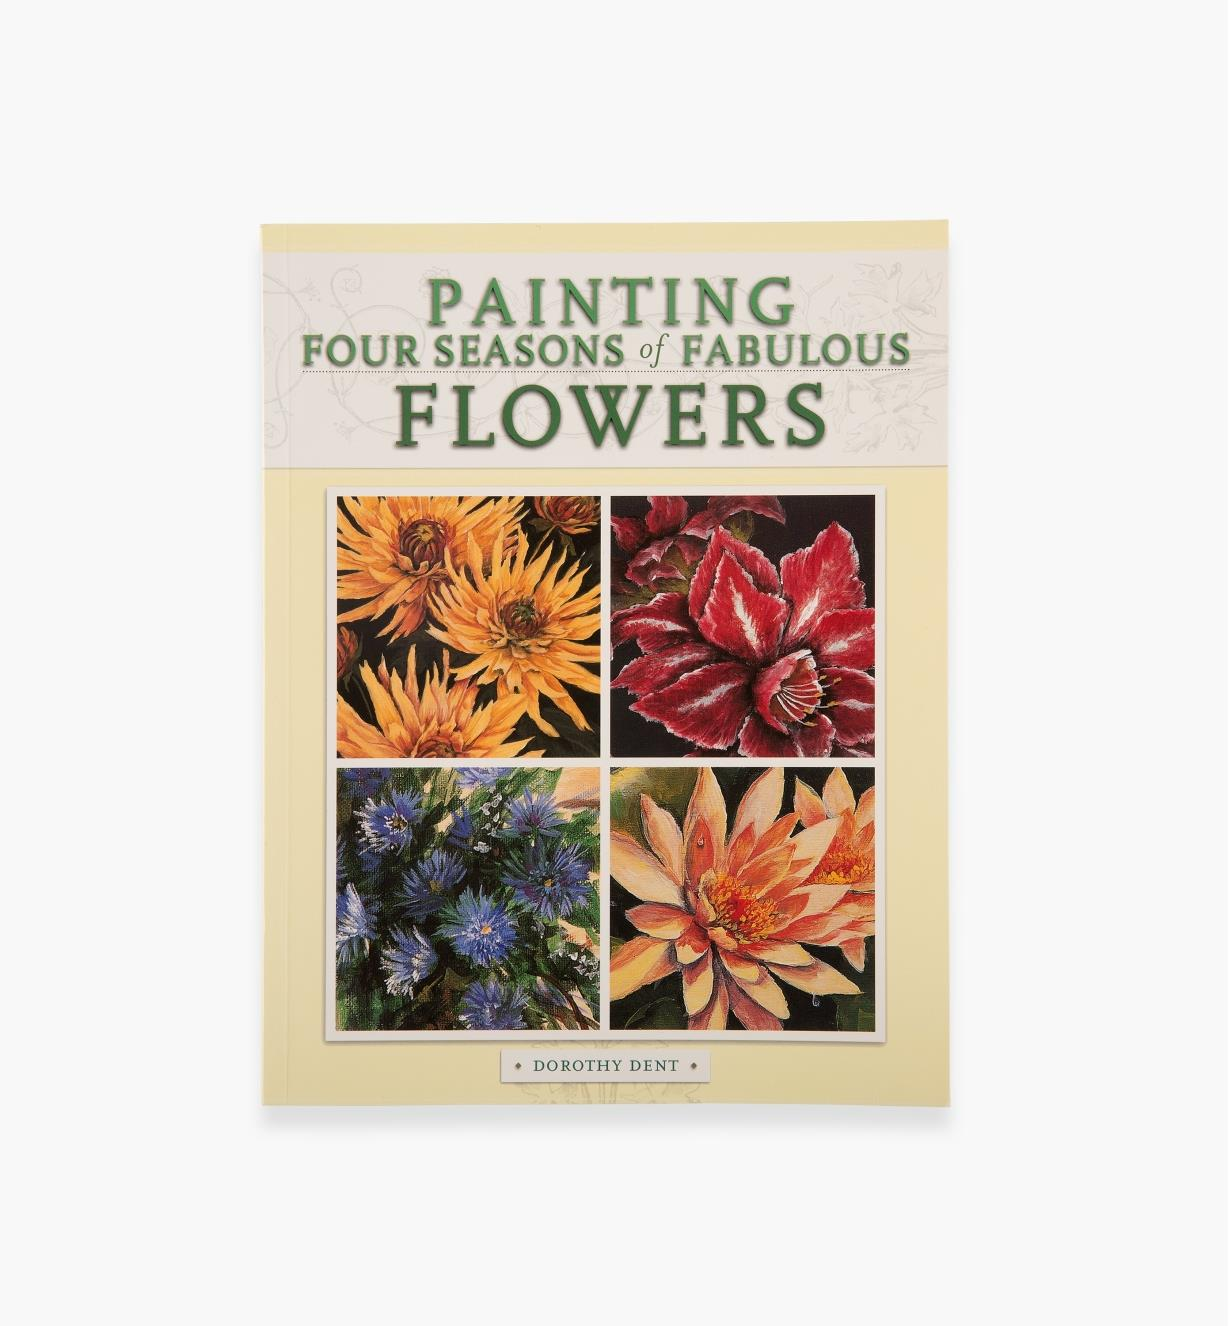 99W8233 - Painting Four Seasons of Fabulous Flowers